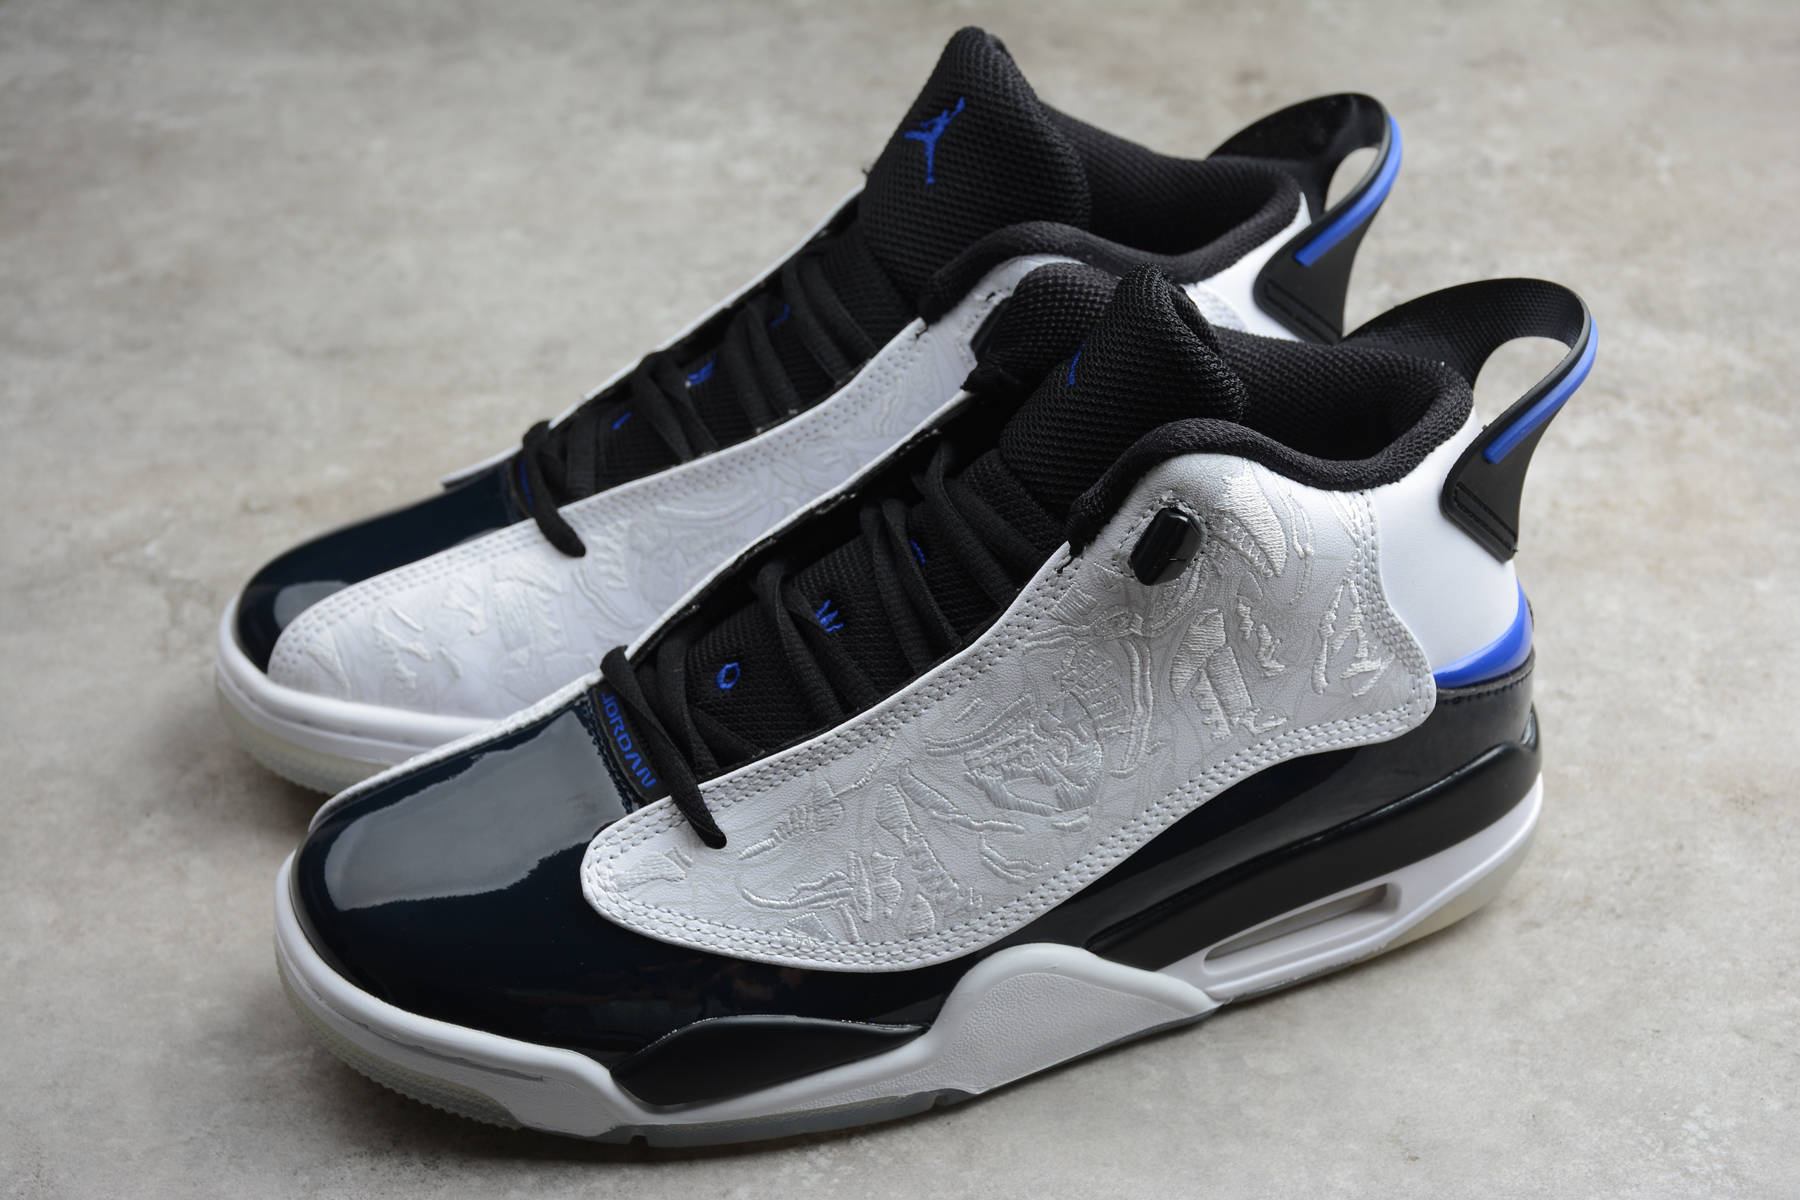 Air Jordan DUB Zero Black White Blue Shoes